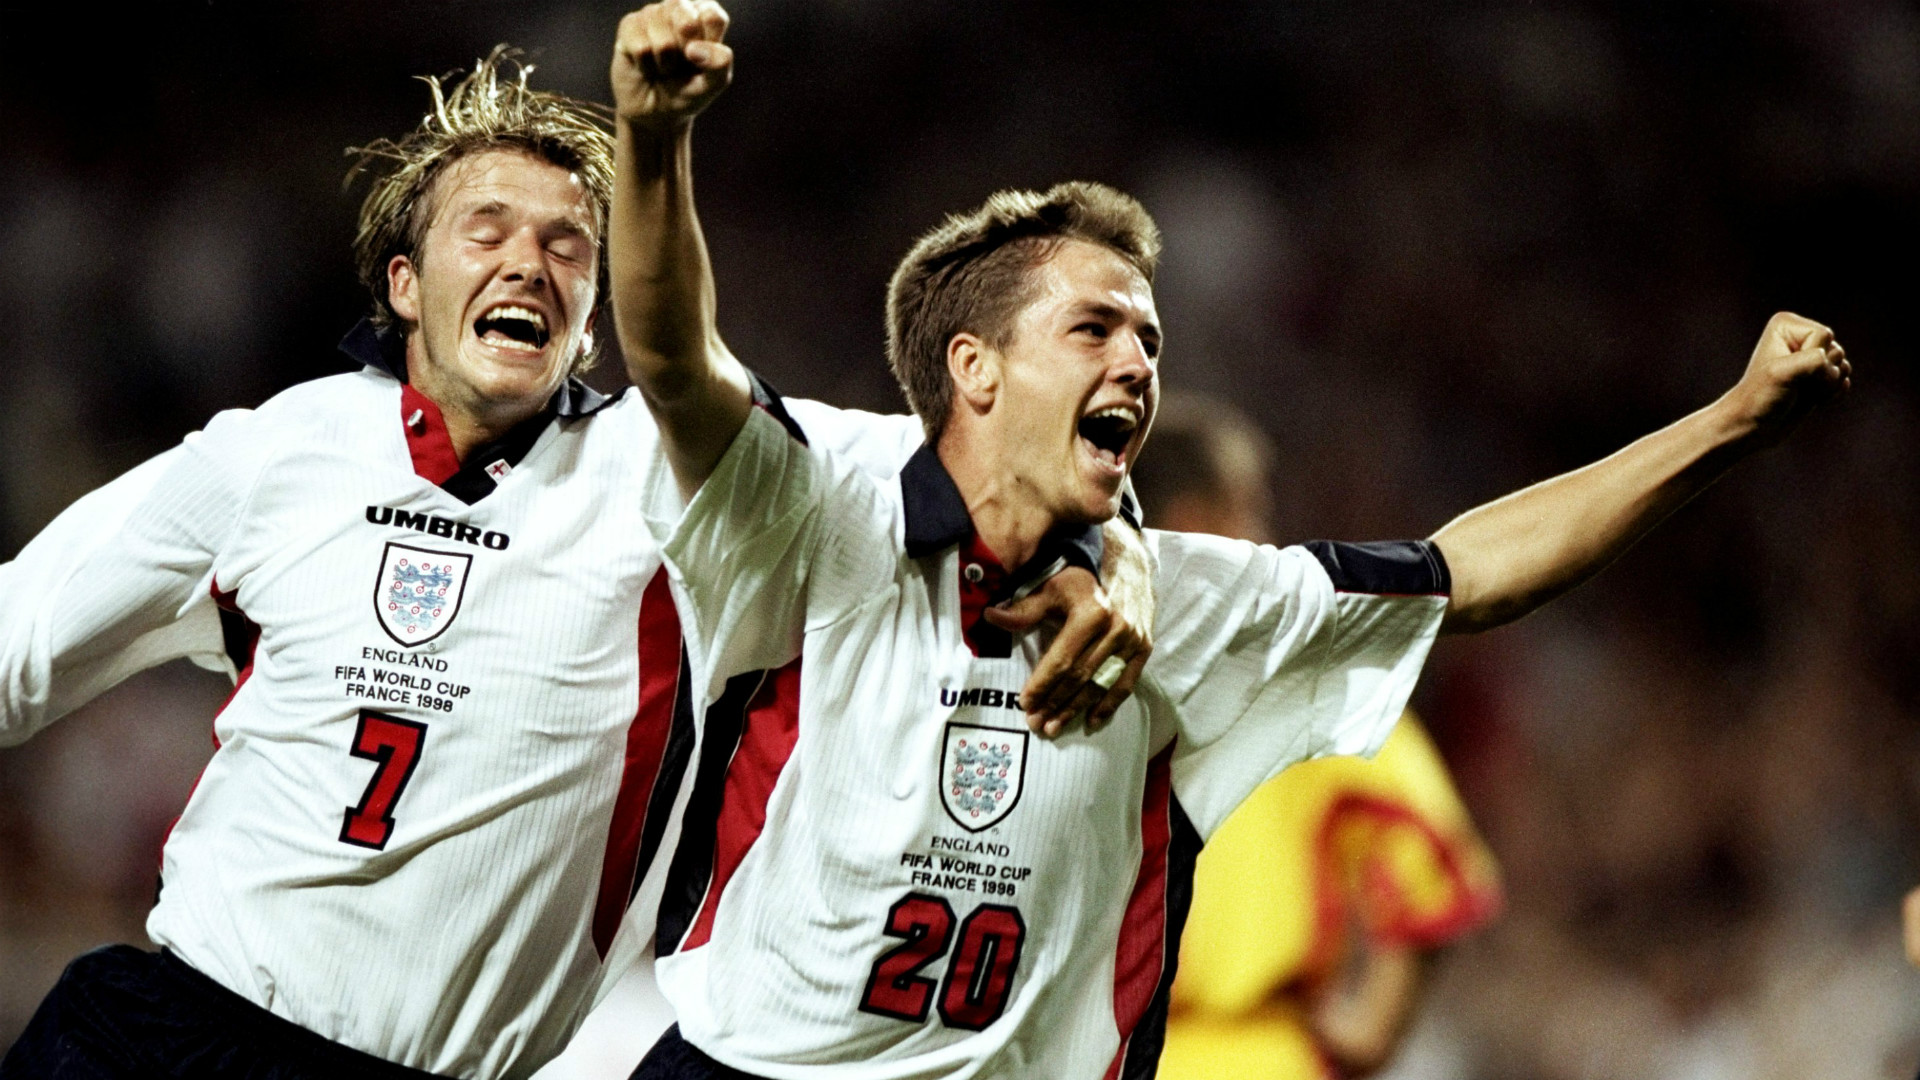 David Beckham Michael Owen England Romania FIFA World Cup 1998